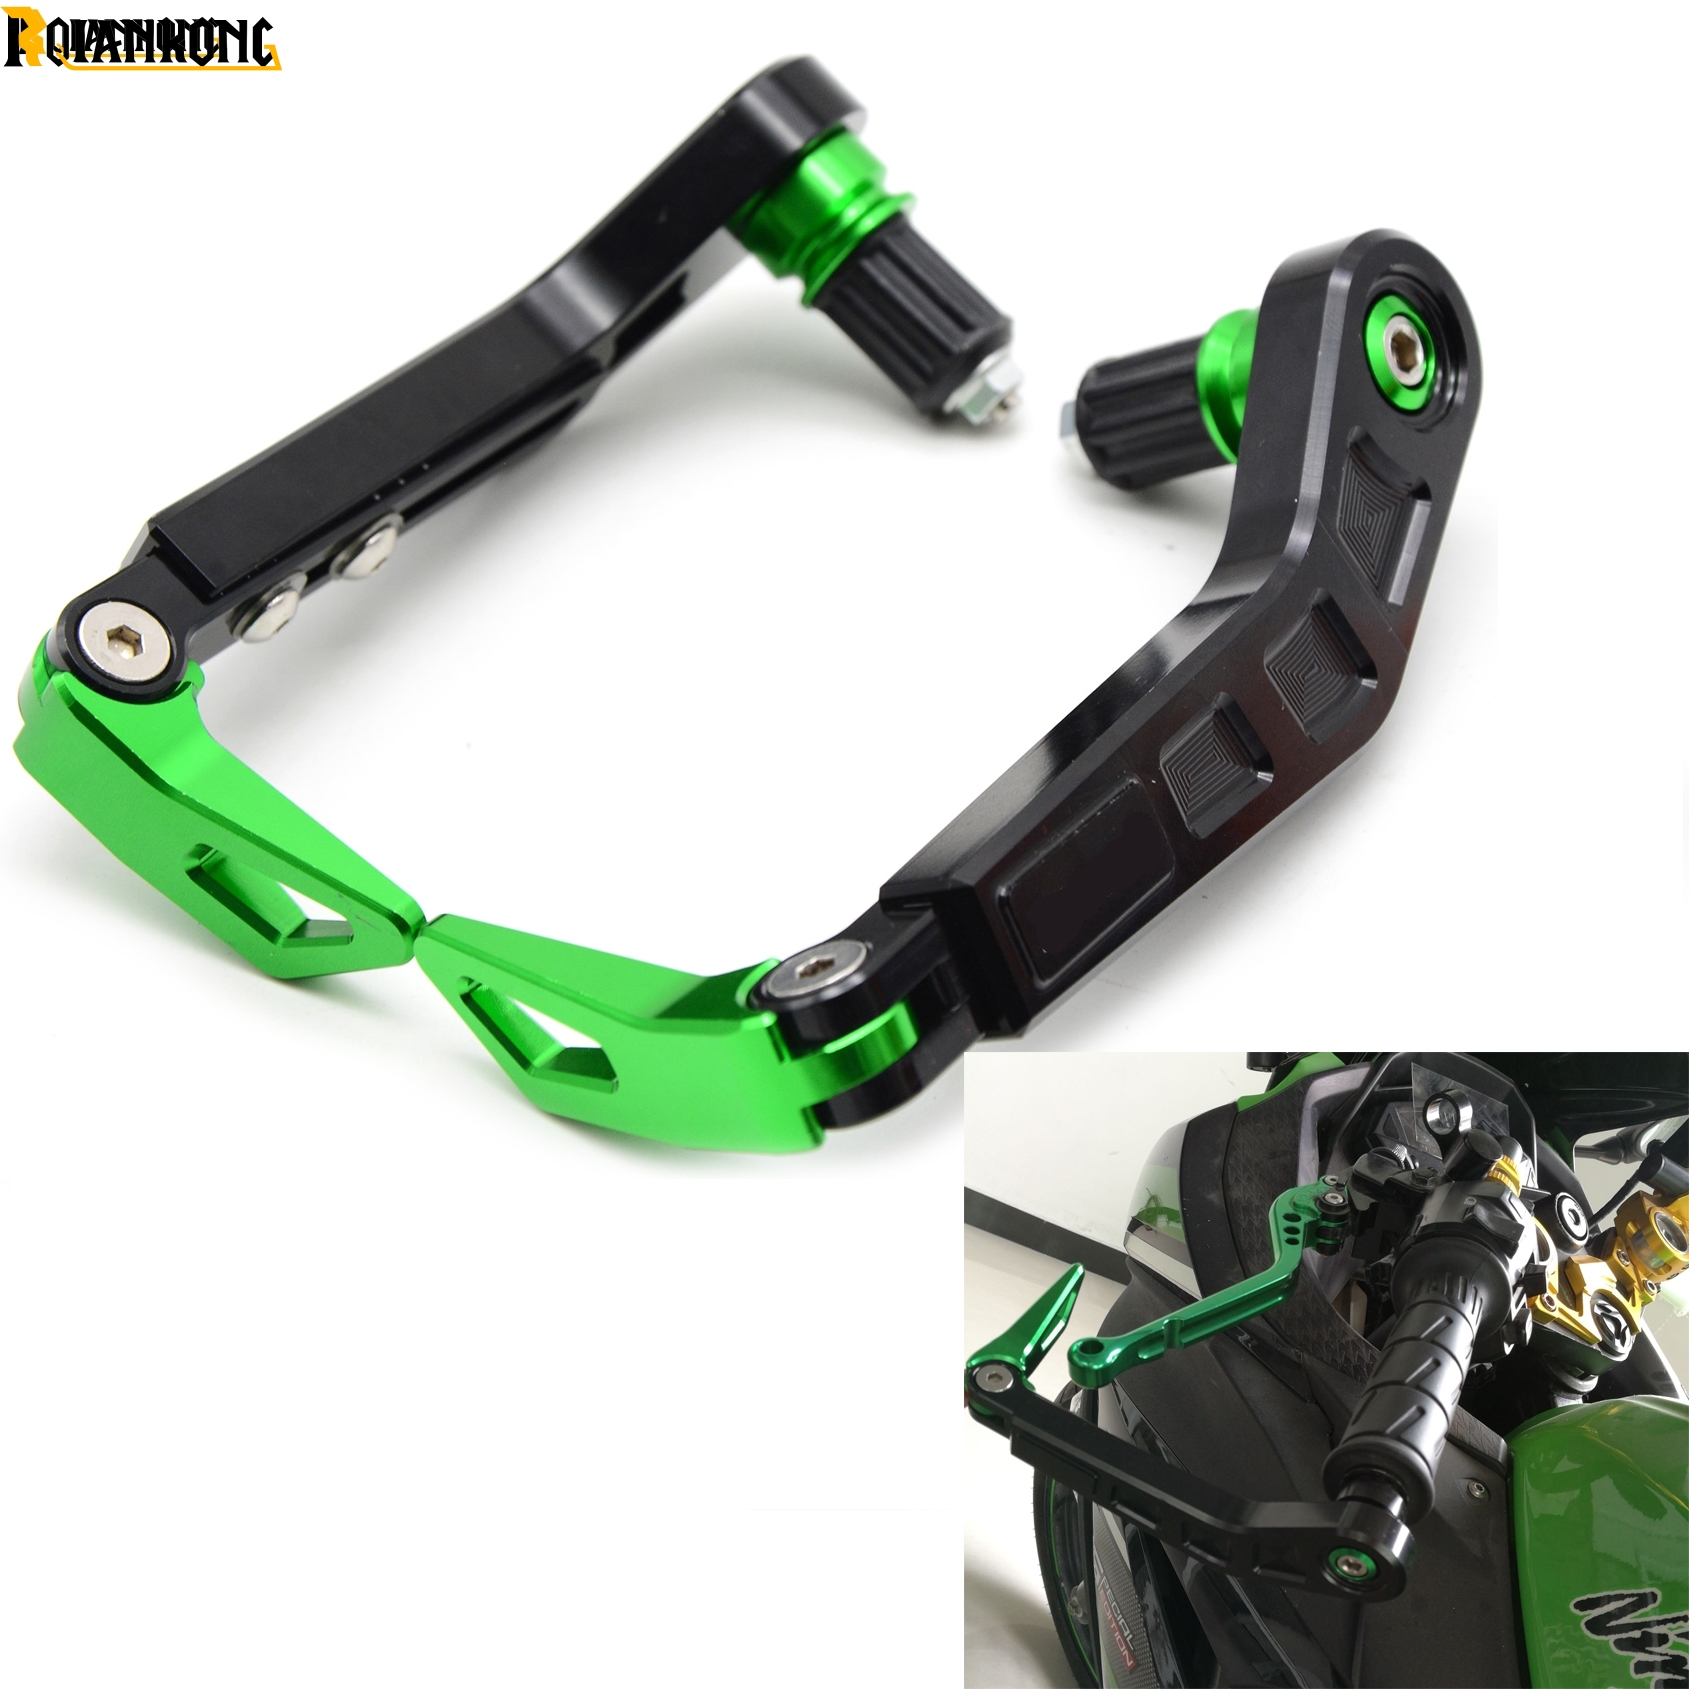 Universal 22mm Motorcycle Handlebar Brake Clutch Lever Protect Guard for Kawasaki Ninja 1000 1000R 250 250R 300 300R 400R 650Universal 22mm Motorcycle Handlebar Brake Clutch Lever Protect Guard for Kawasaki Ninja 1000 1000R 250 250R 300 300R 400R 650